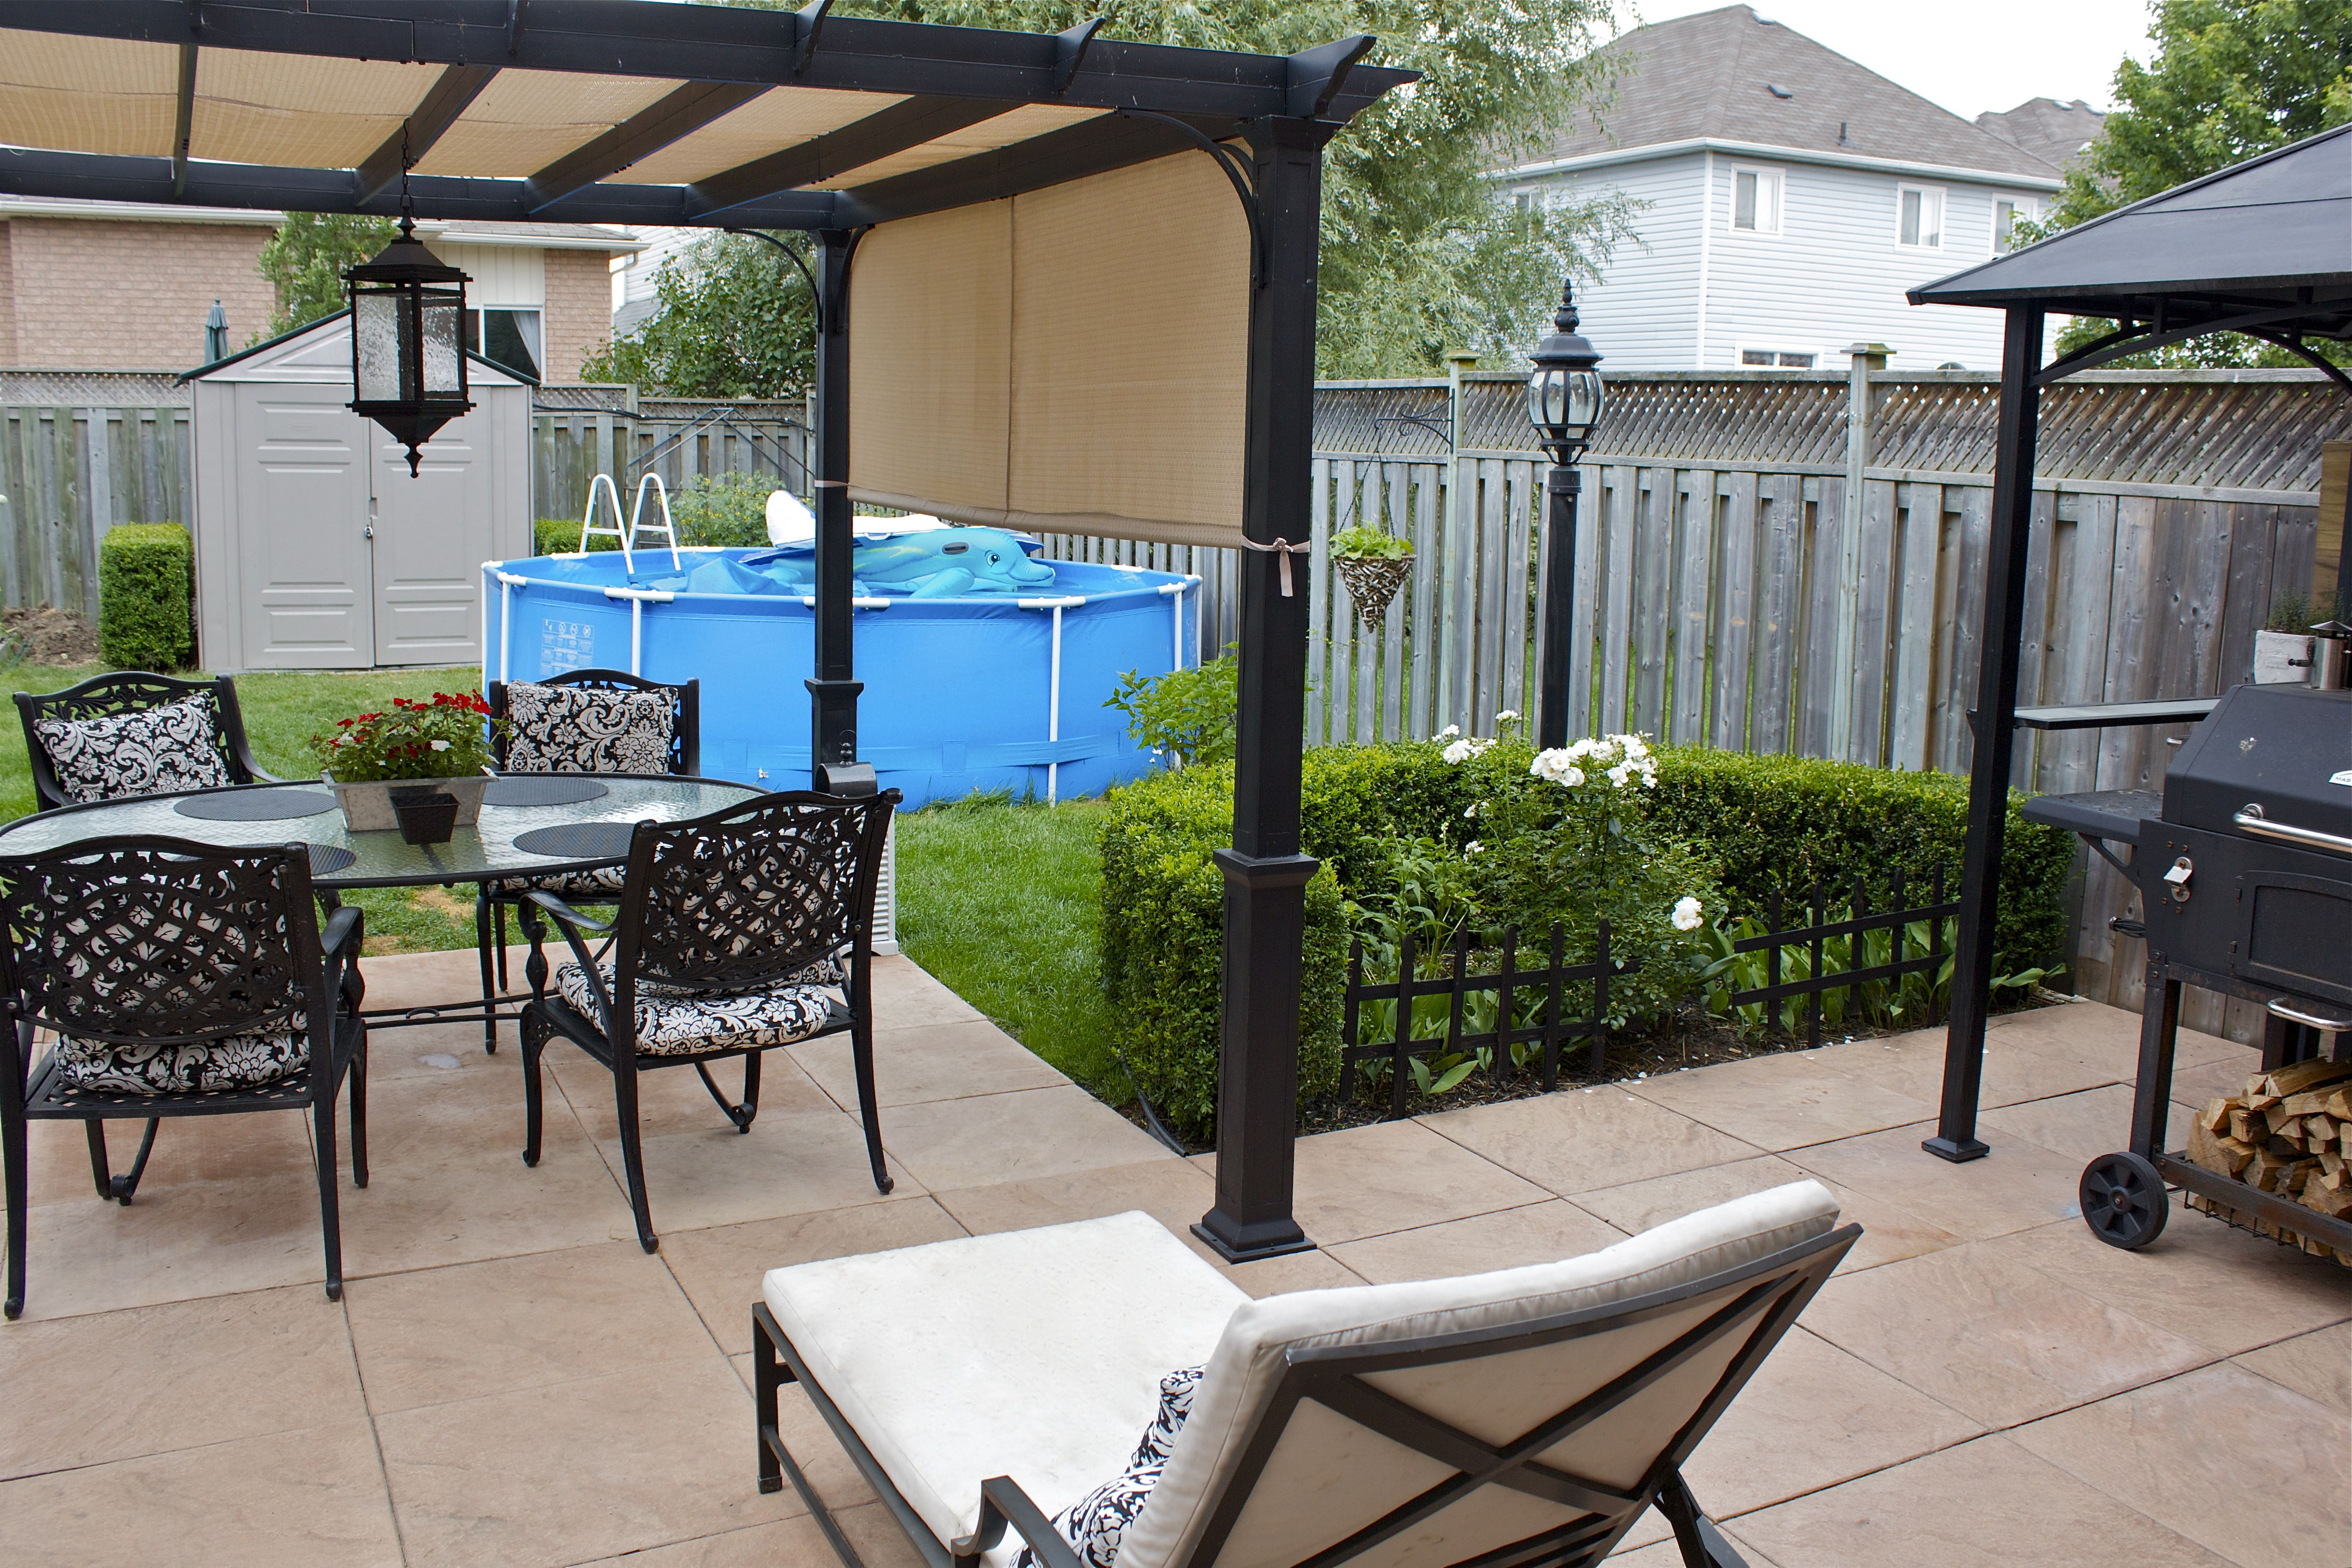 Our patio extension 2012 | Patio Ideas | Pinterest on Backyard Patio Extension id=41373